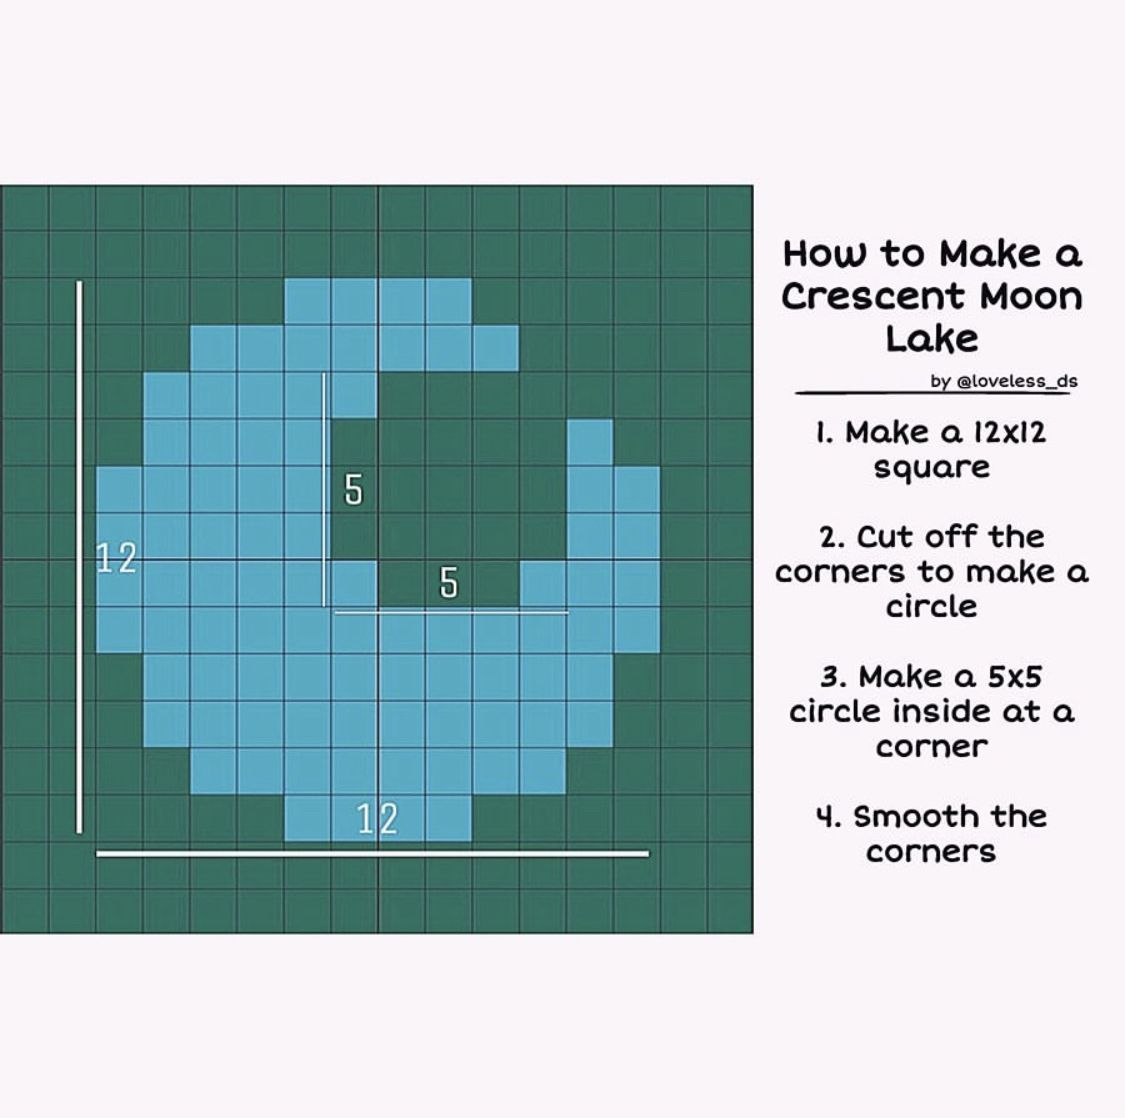 Pin By Kaitlyn Lopez On Acnh Patterns And Ideas In 2020 Pond Animals Animal Crossing Guide Lake Animals